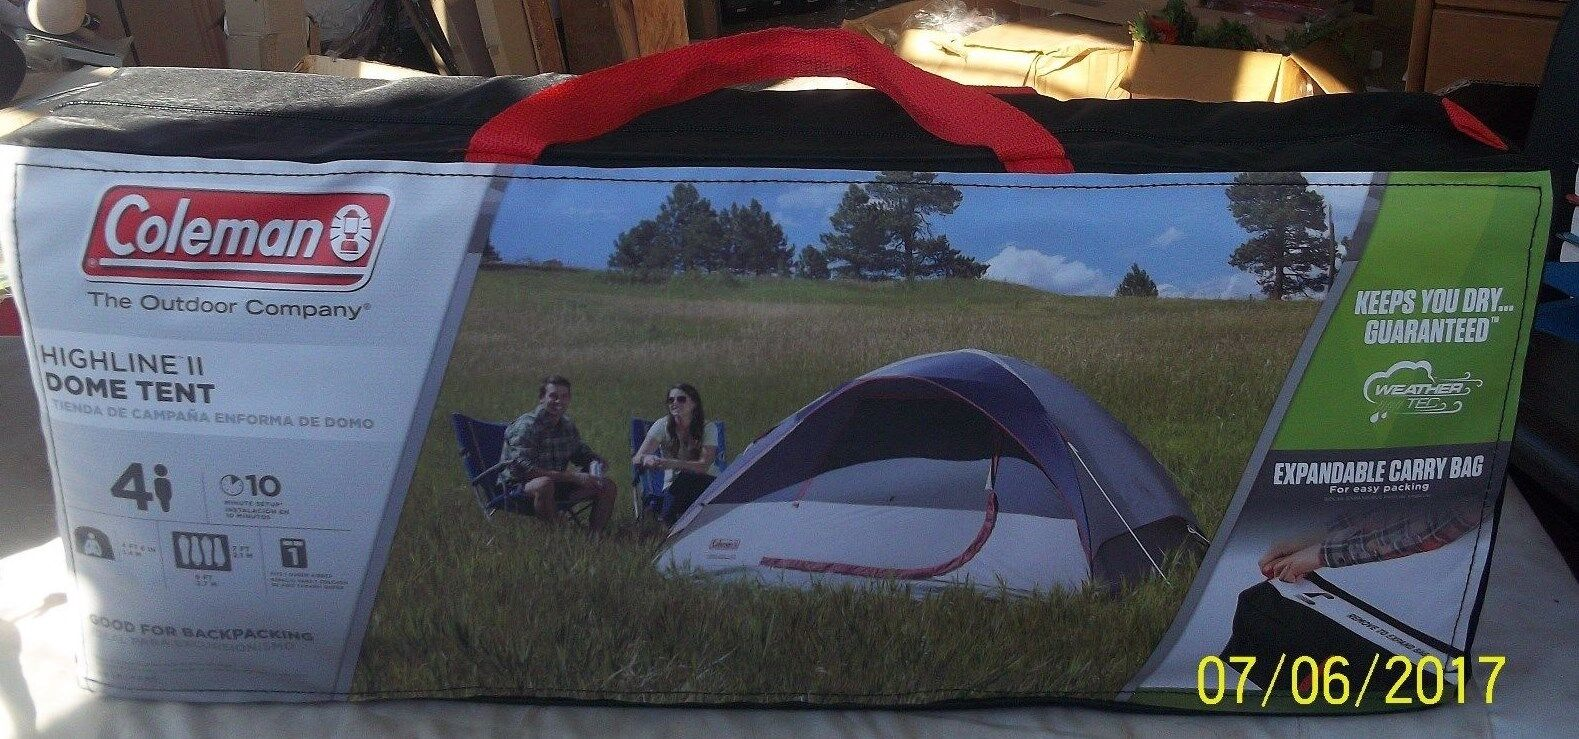 COLEMAN HIGHLINE II Dome Dome Dome Tent Up to 4 people NIB NEW IN CARRYING CASE 85b4ec